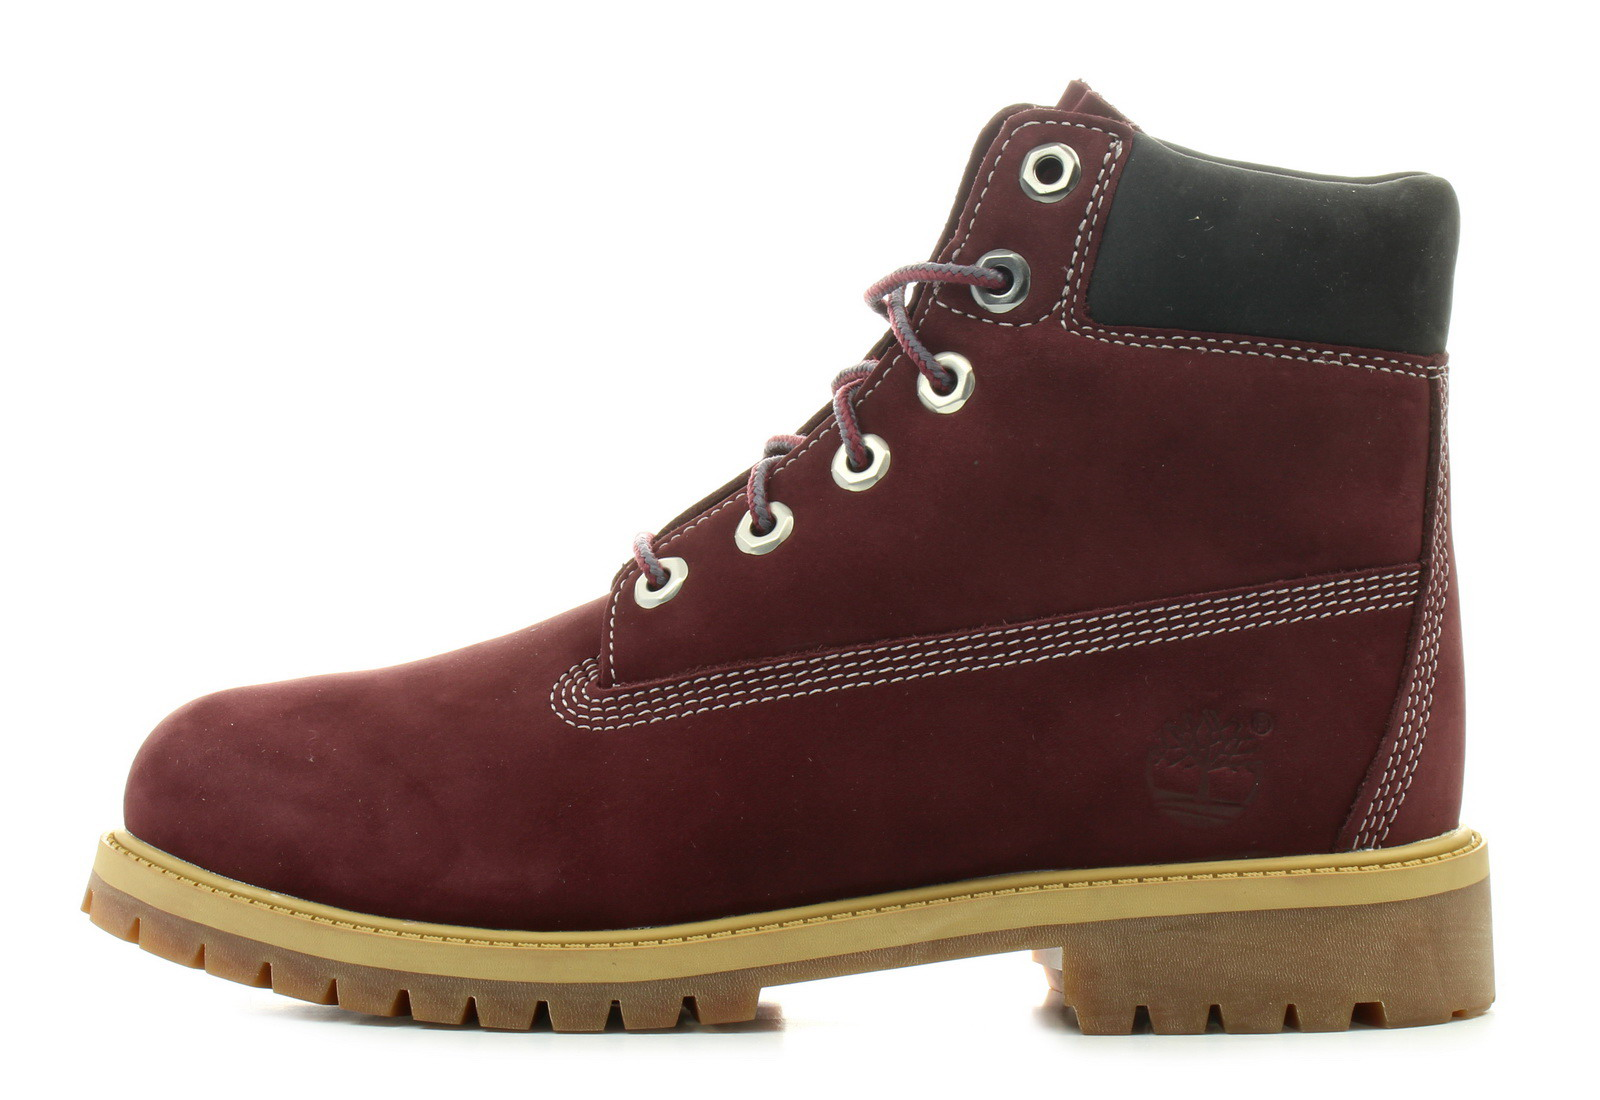 Timberland Boots 6 In Prem Boot a1baq por Online shop for sneakers, shoes and boots